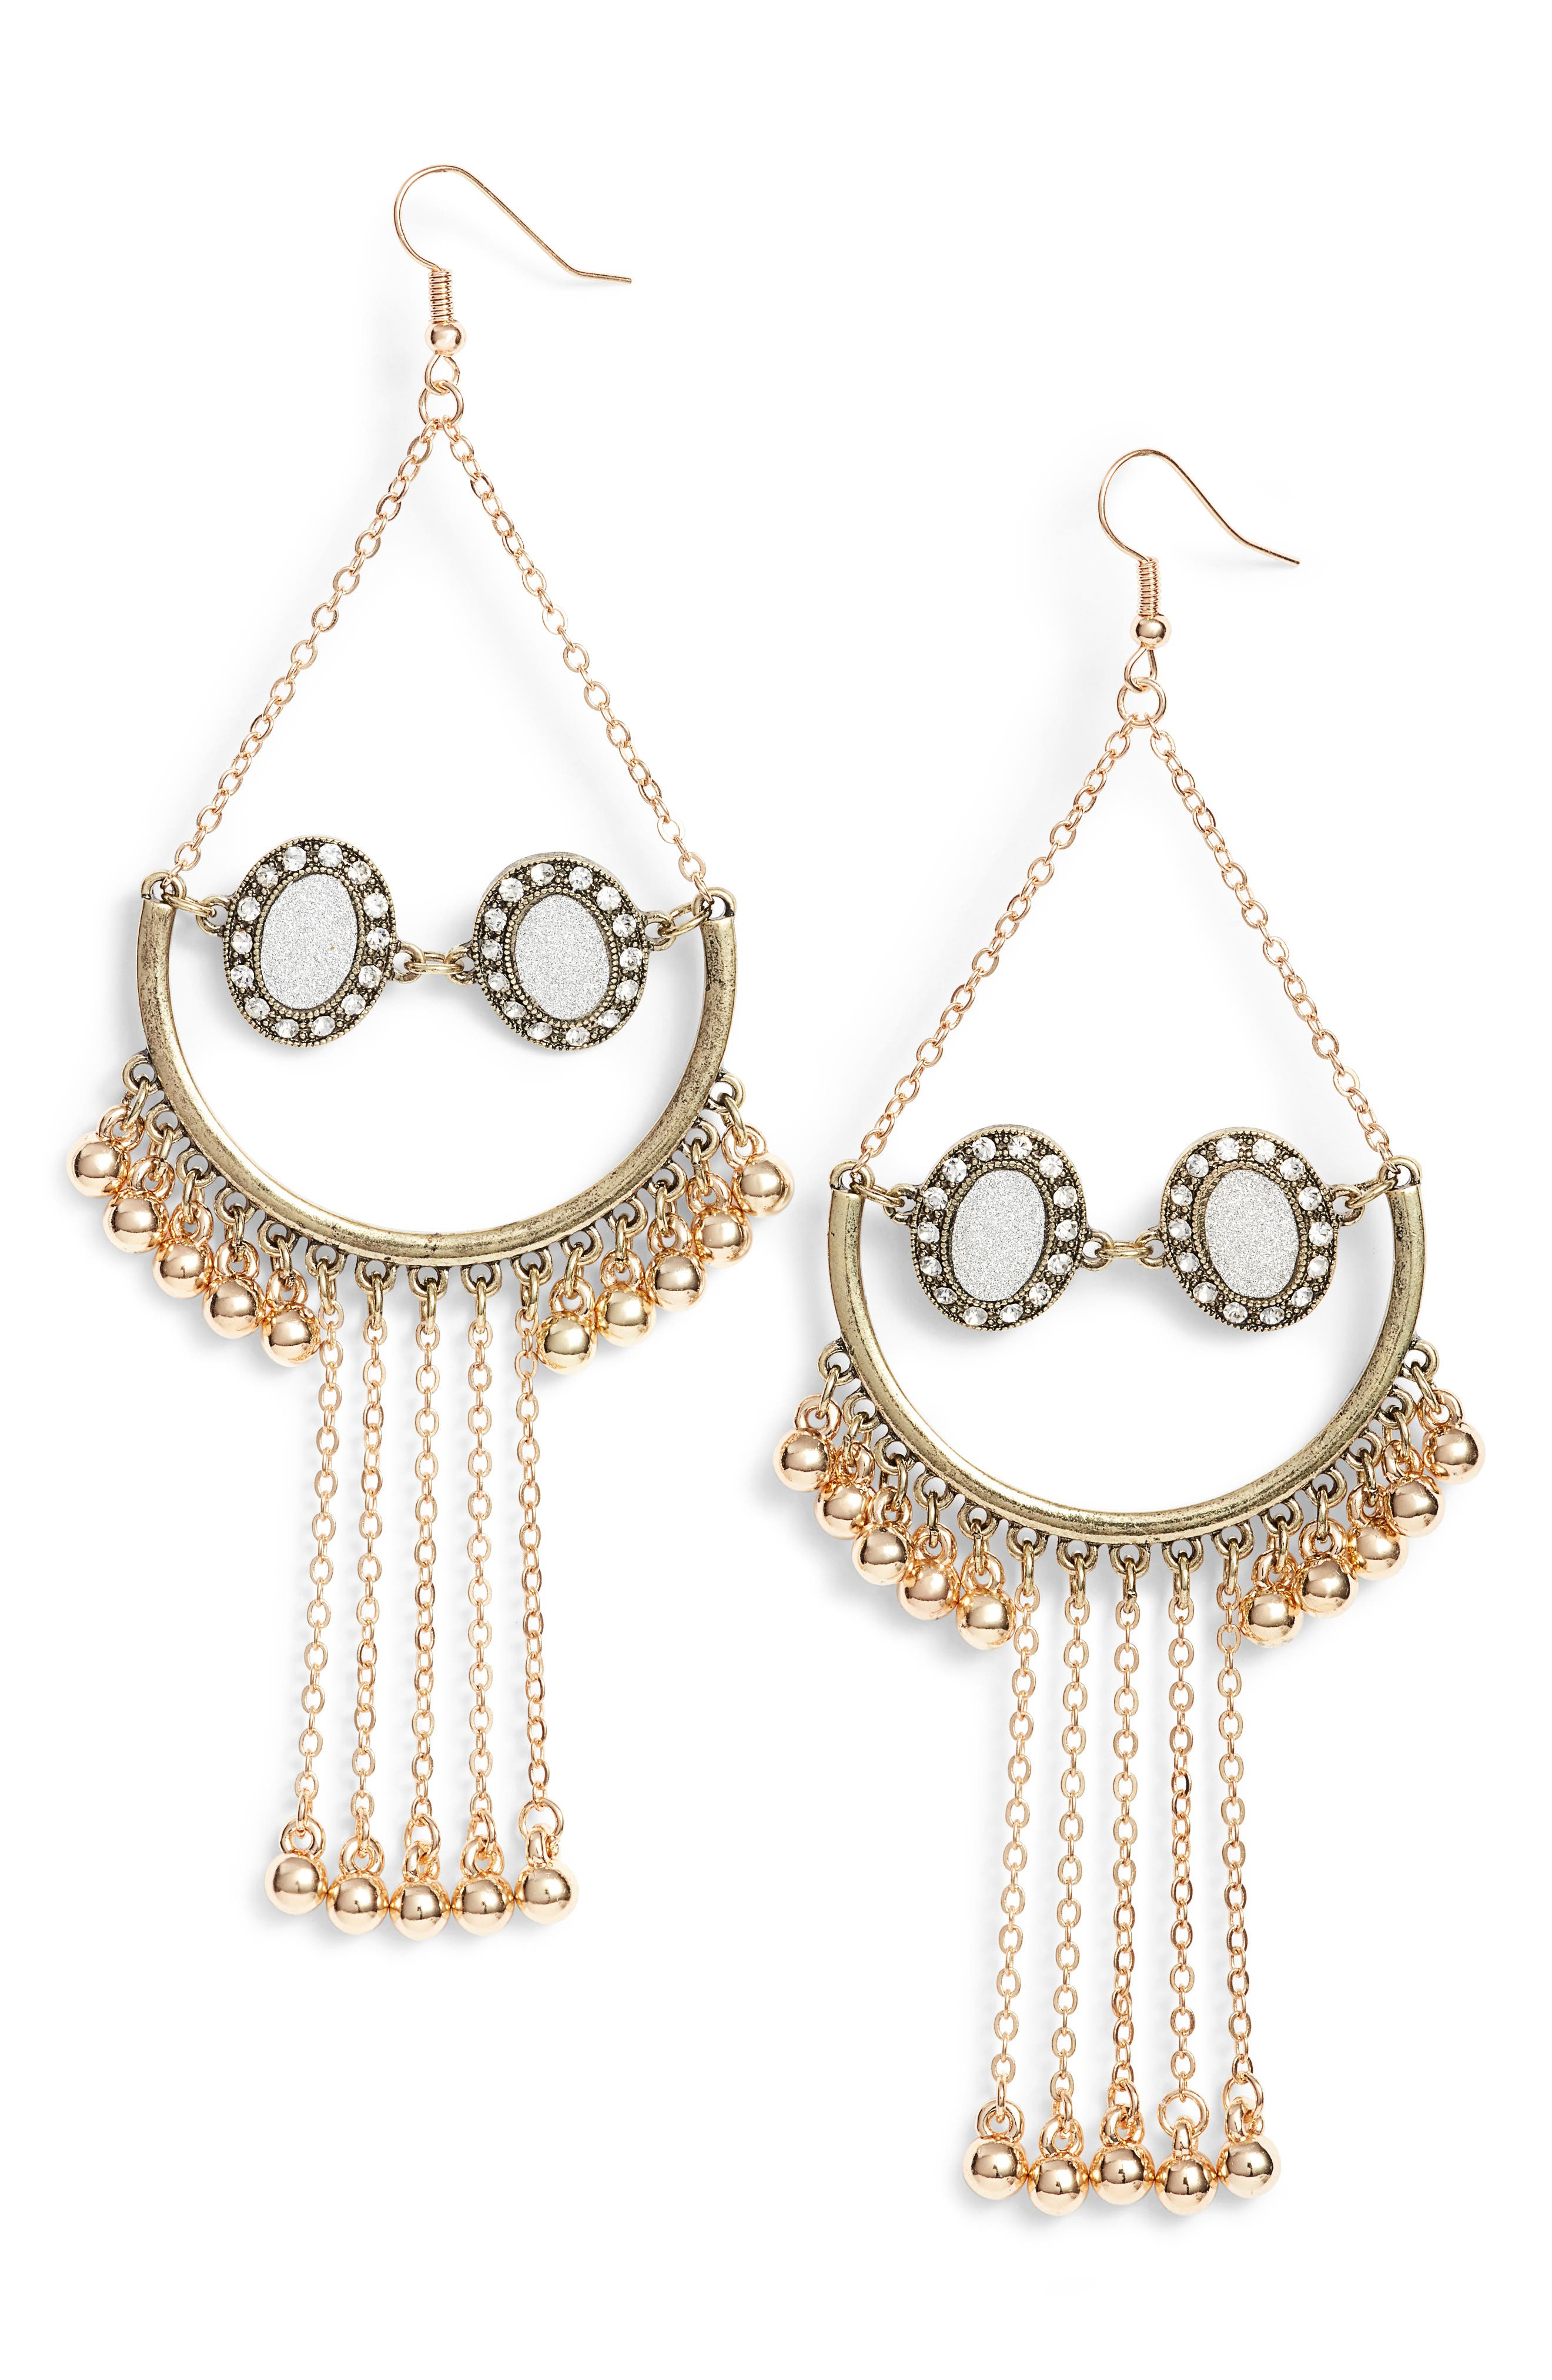 Tassel Statement Earrings,                             Main thumbnail 1, color,                             710